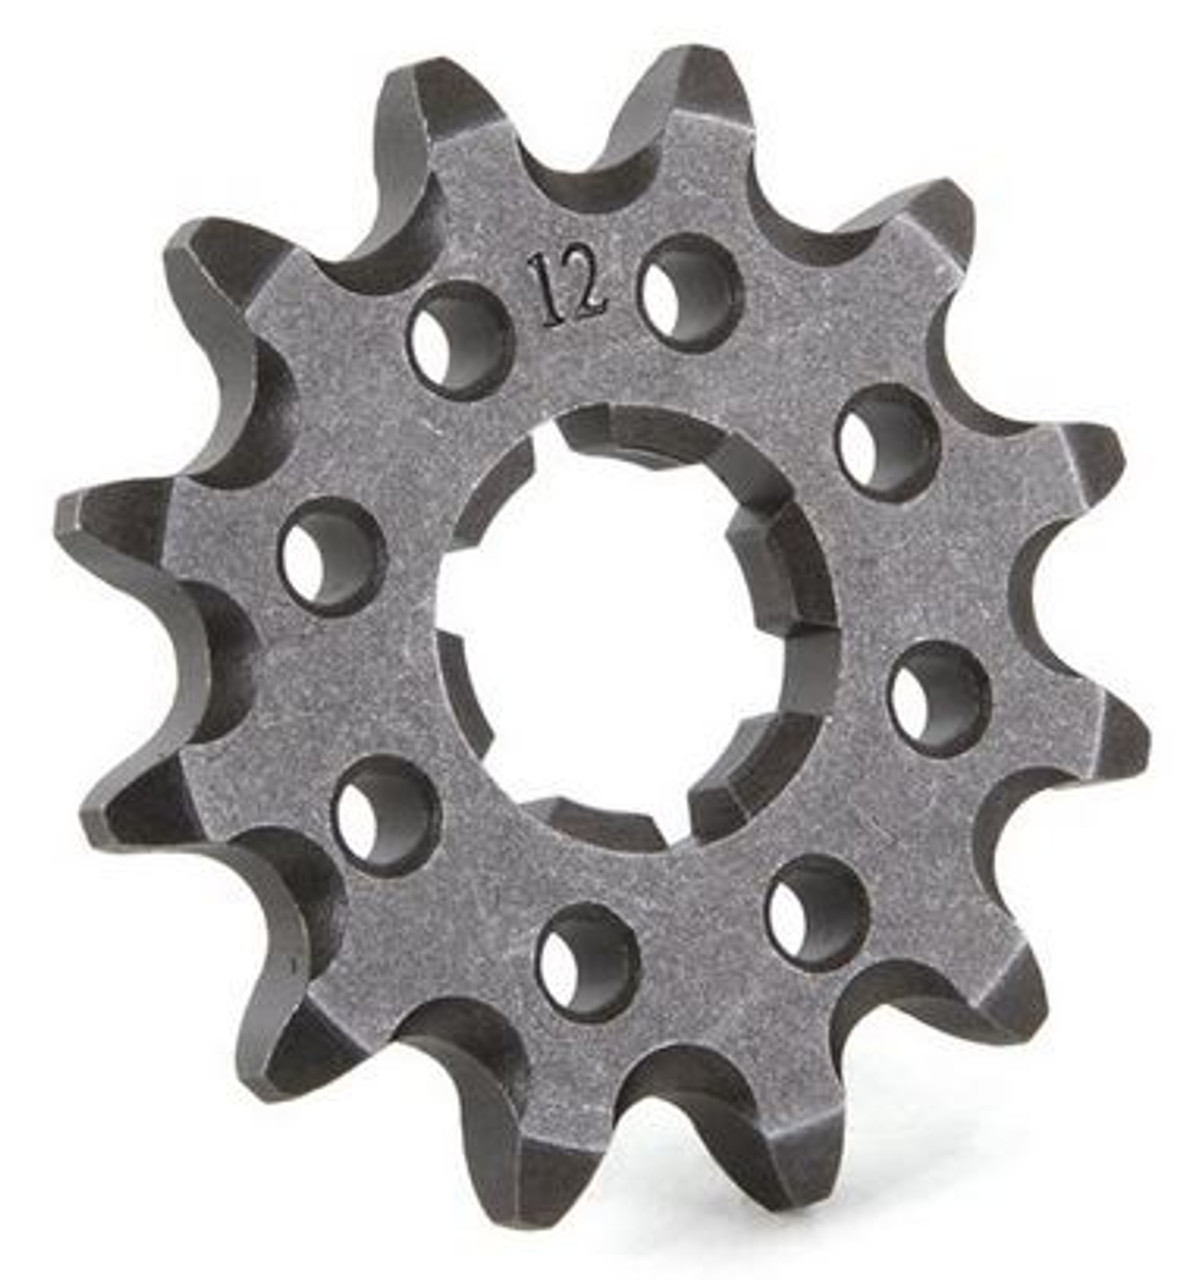 KTM 250 SX-F 2006-2018 FRONT SPROCKET 13 14 15 TOOTH STEEL PROX